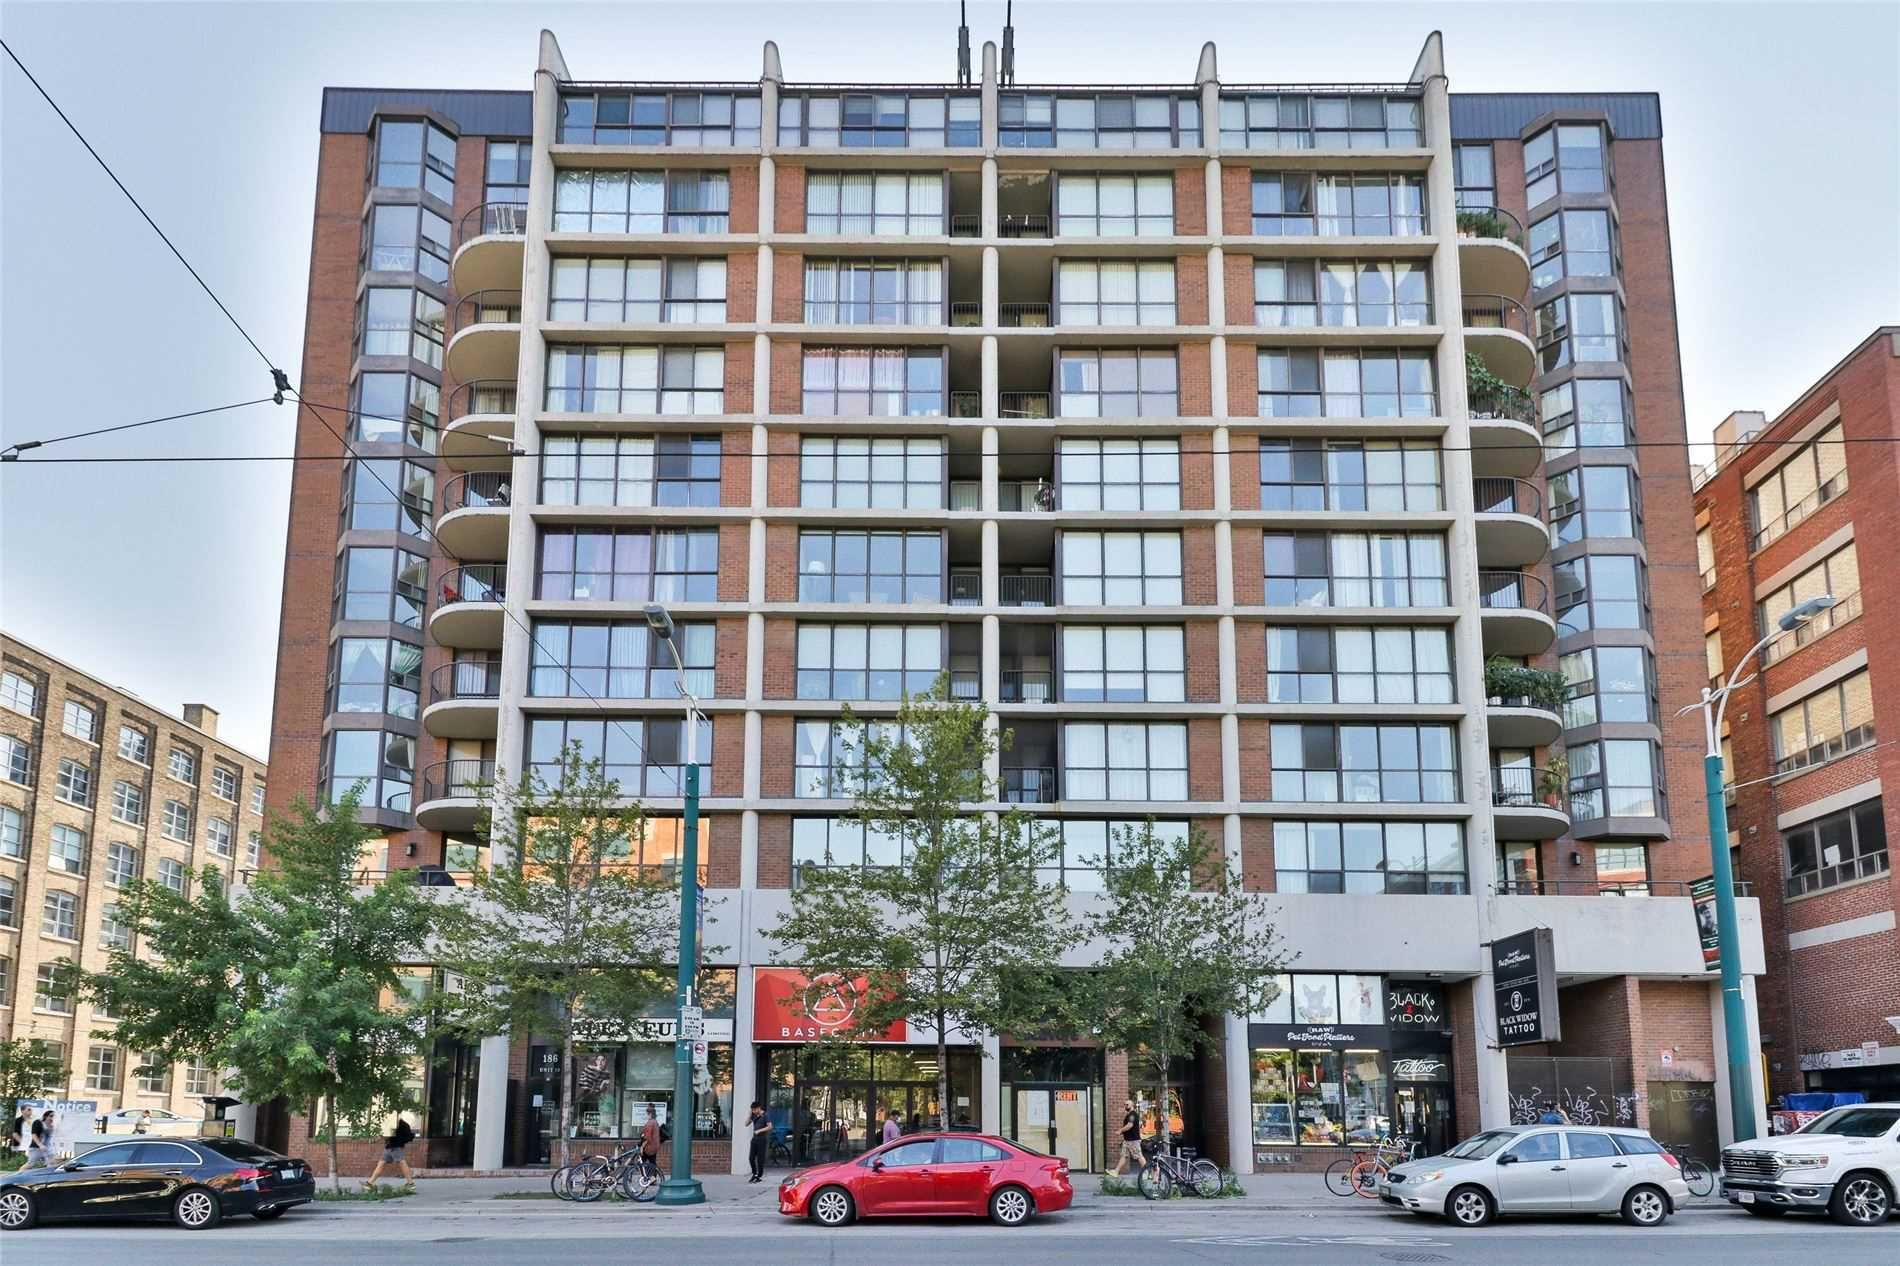 188 Spadina Ave, unit 603 for sale in Chinatown - image #2